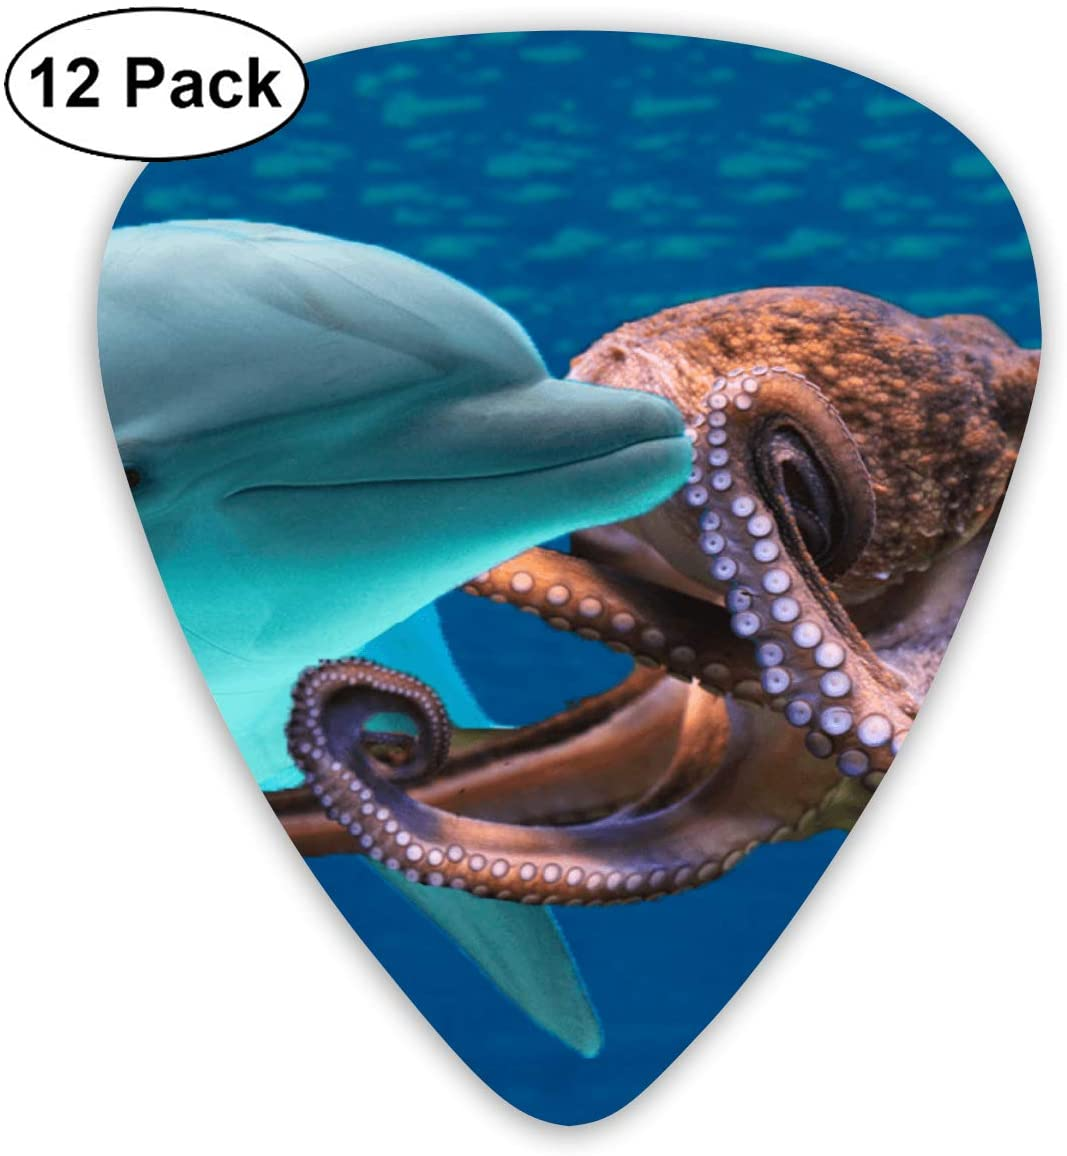 Chion 351 Shape Classic Celluloid Dolphins and Octopuses Guitar Picks 12 Pack